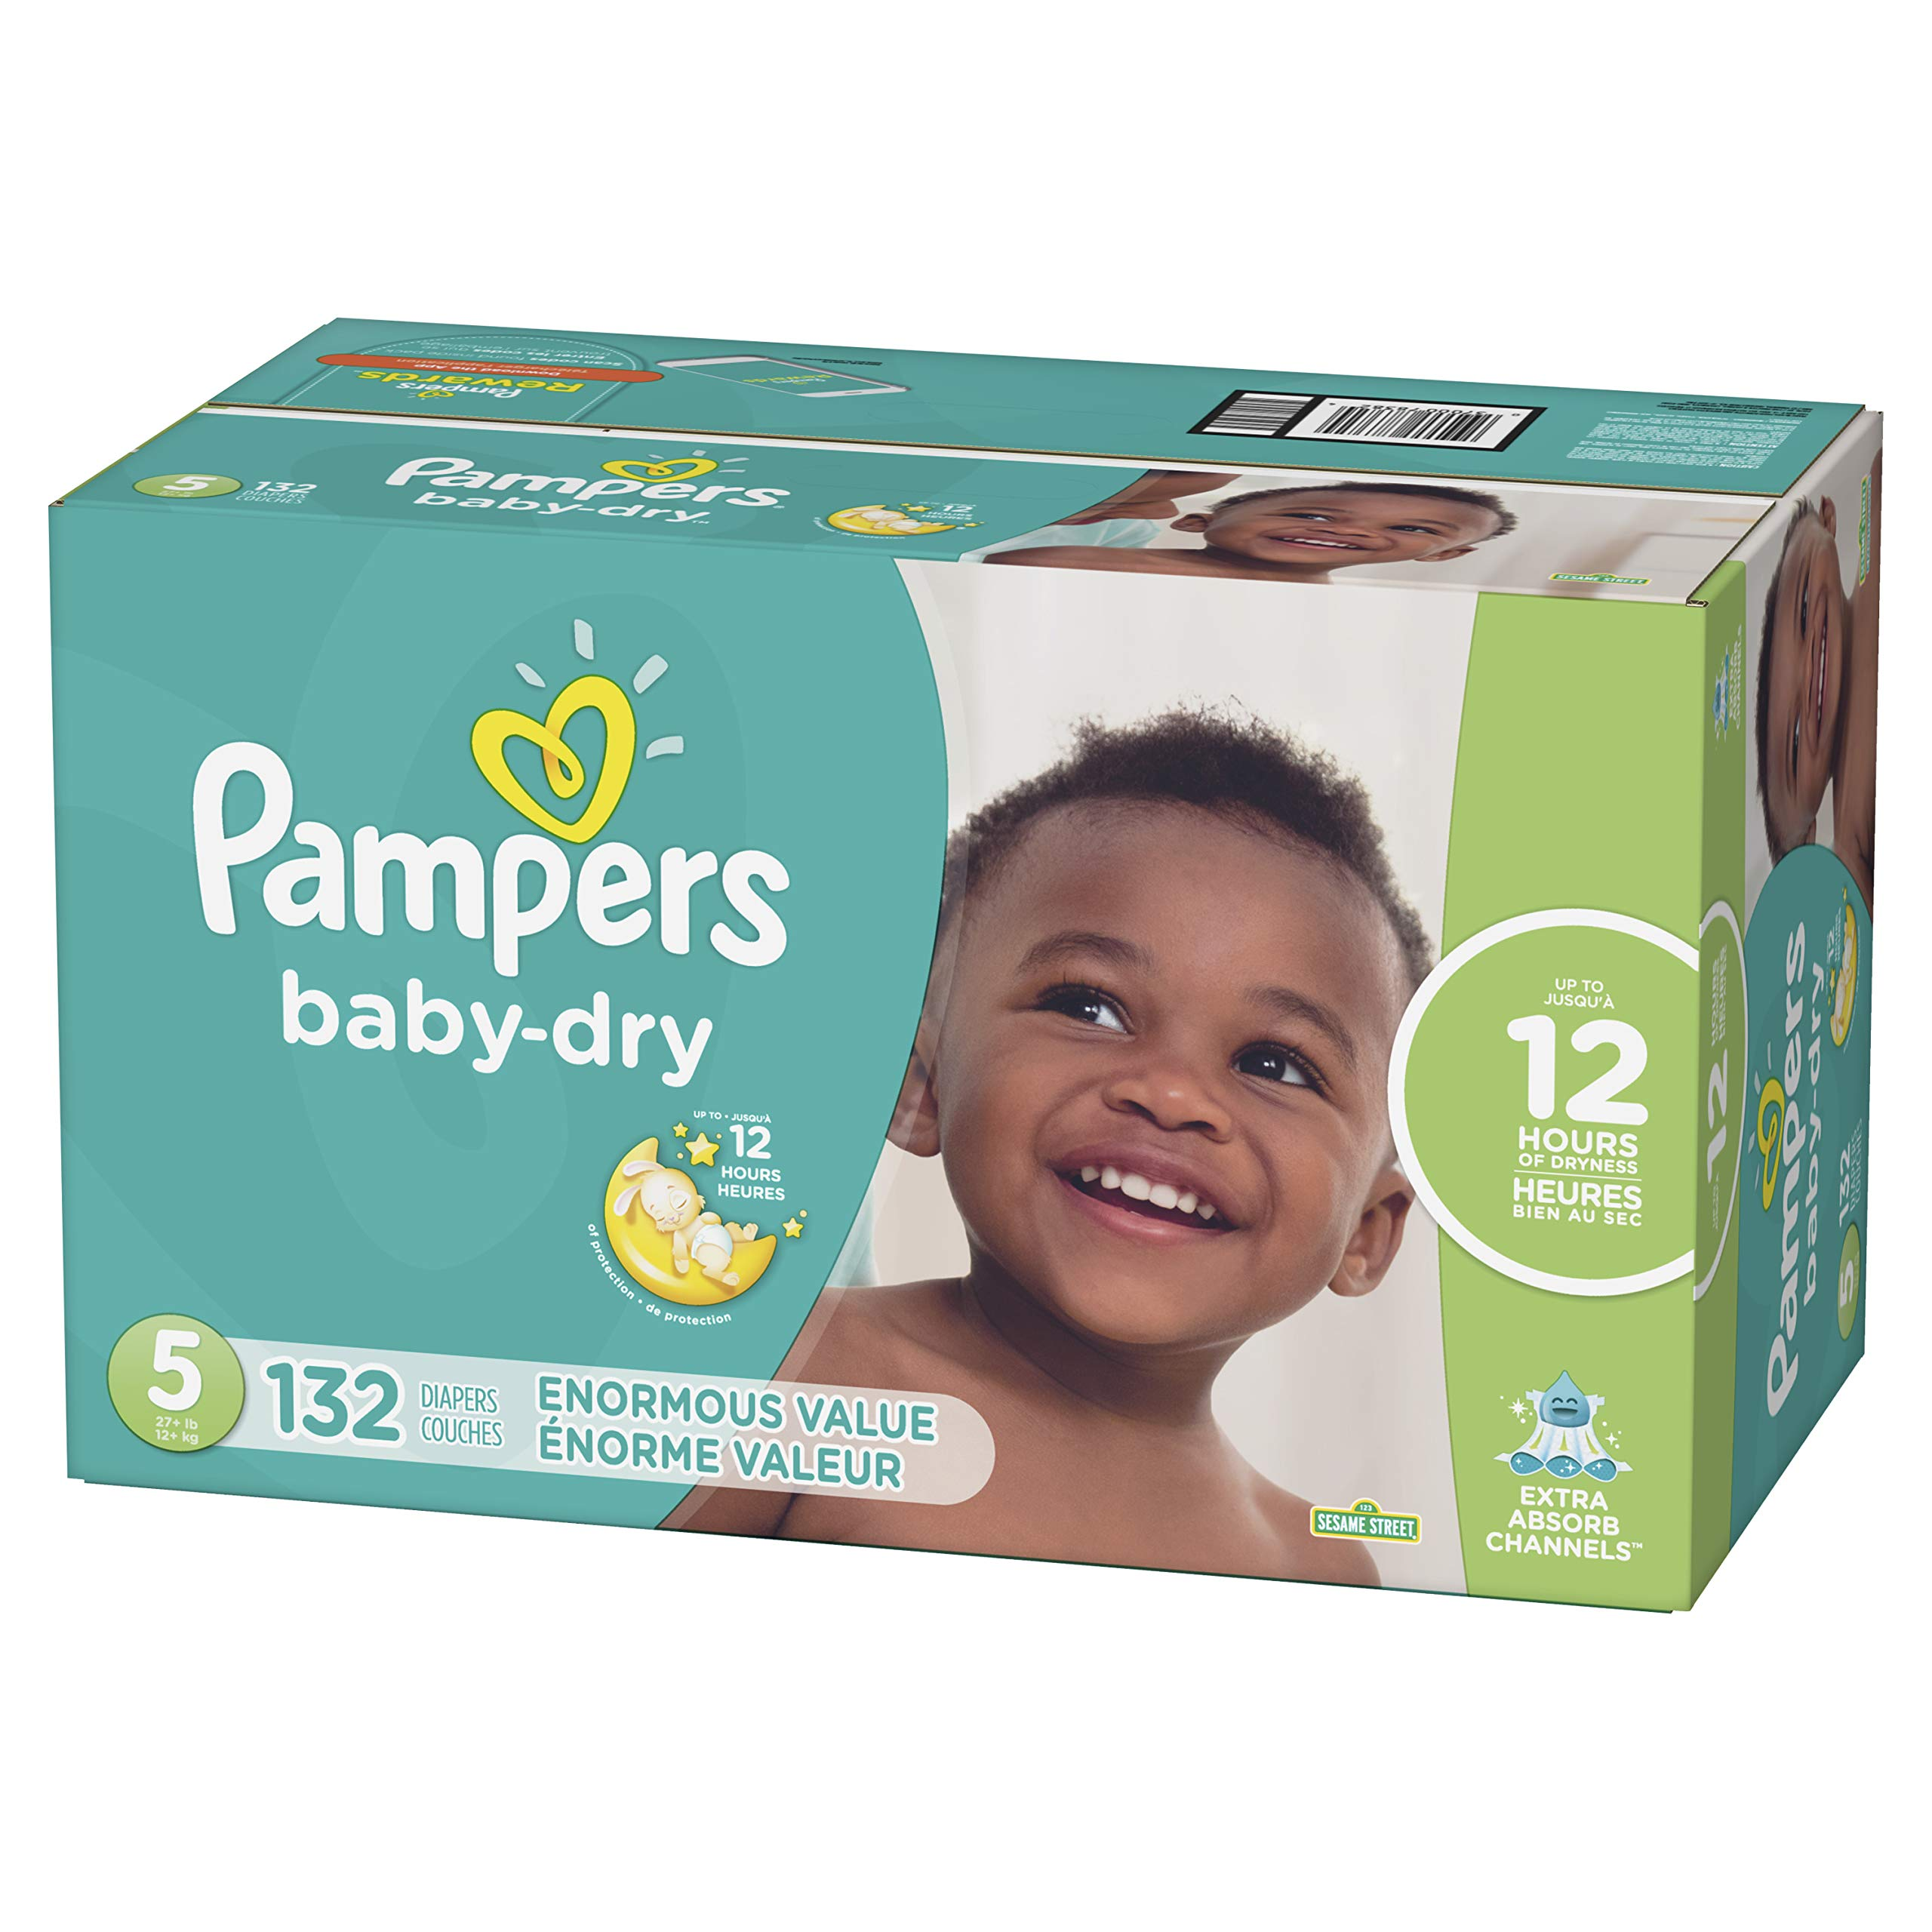 Diapers Size 5, 132 Count - Pampers Baby Dry Disposable Baby Diapers, Enormous Pack by Pampers